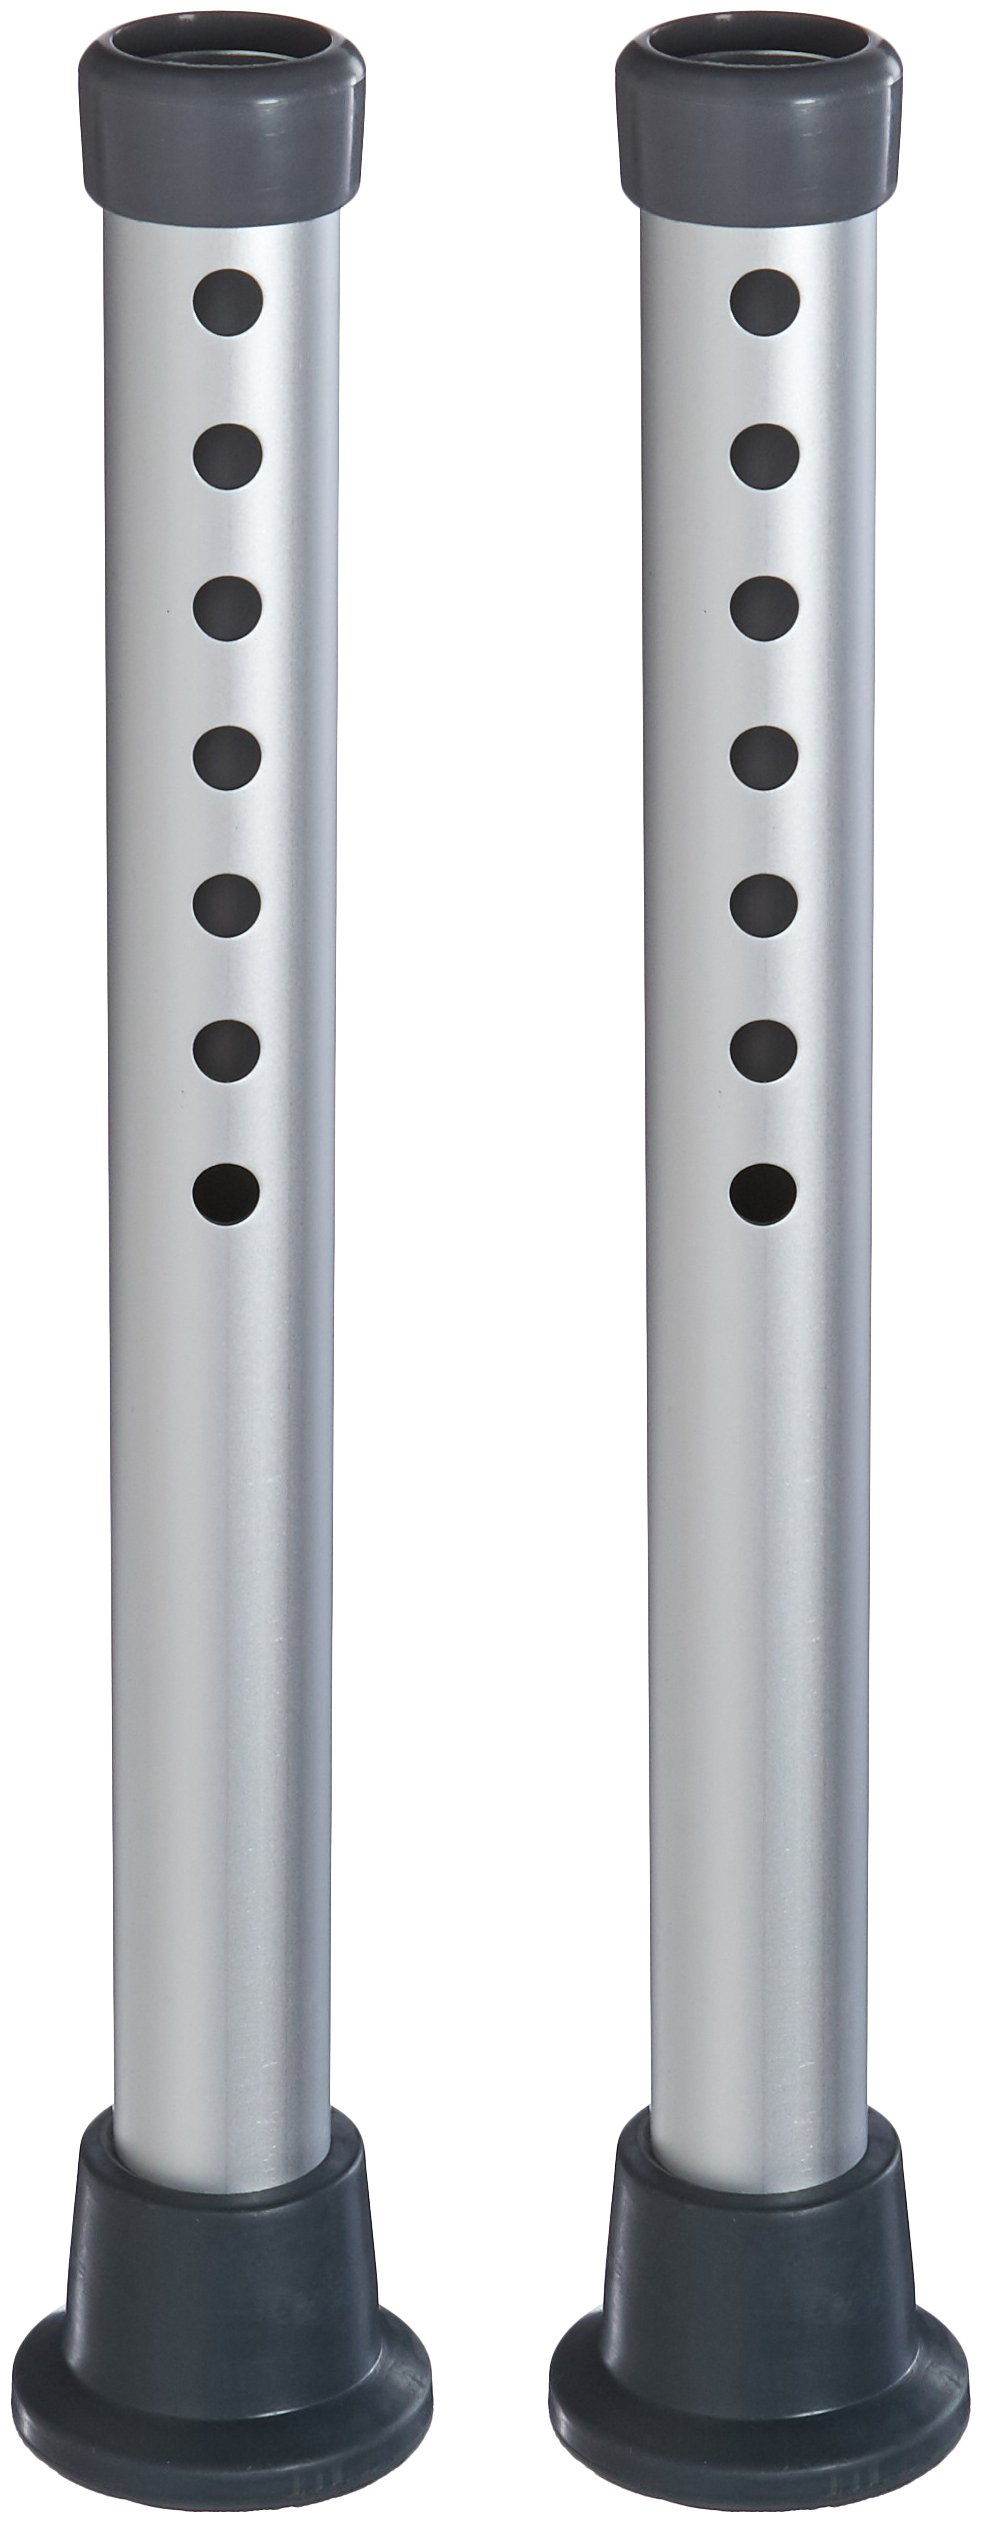 Lumex 7954A Extension 4-Inch Legs Pair with Flange Tips Only